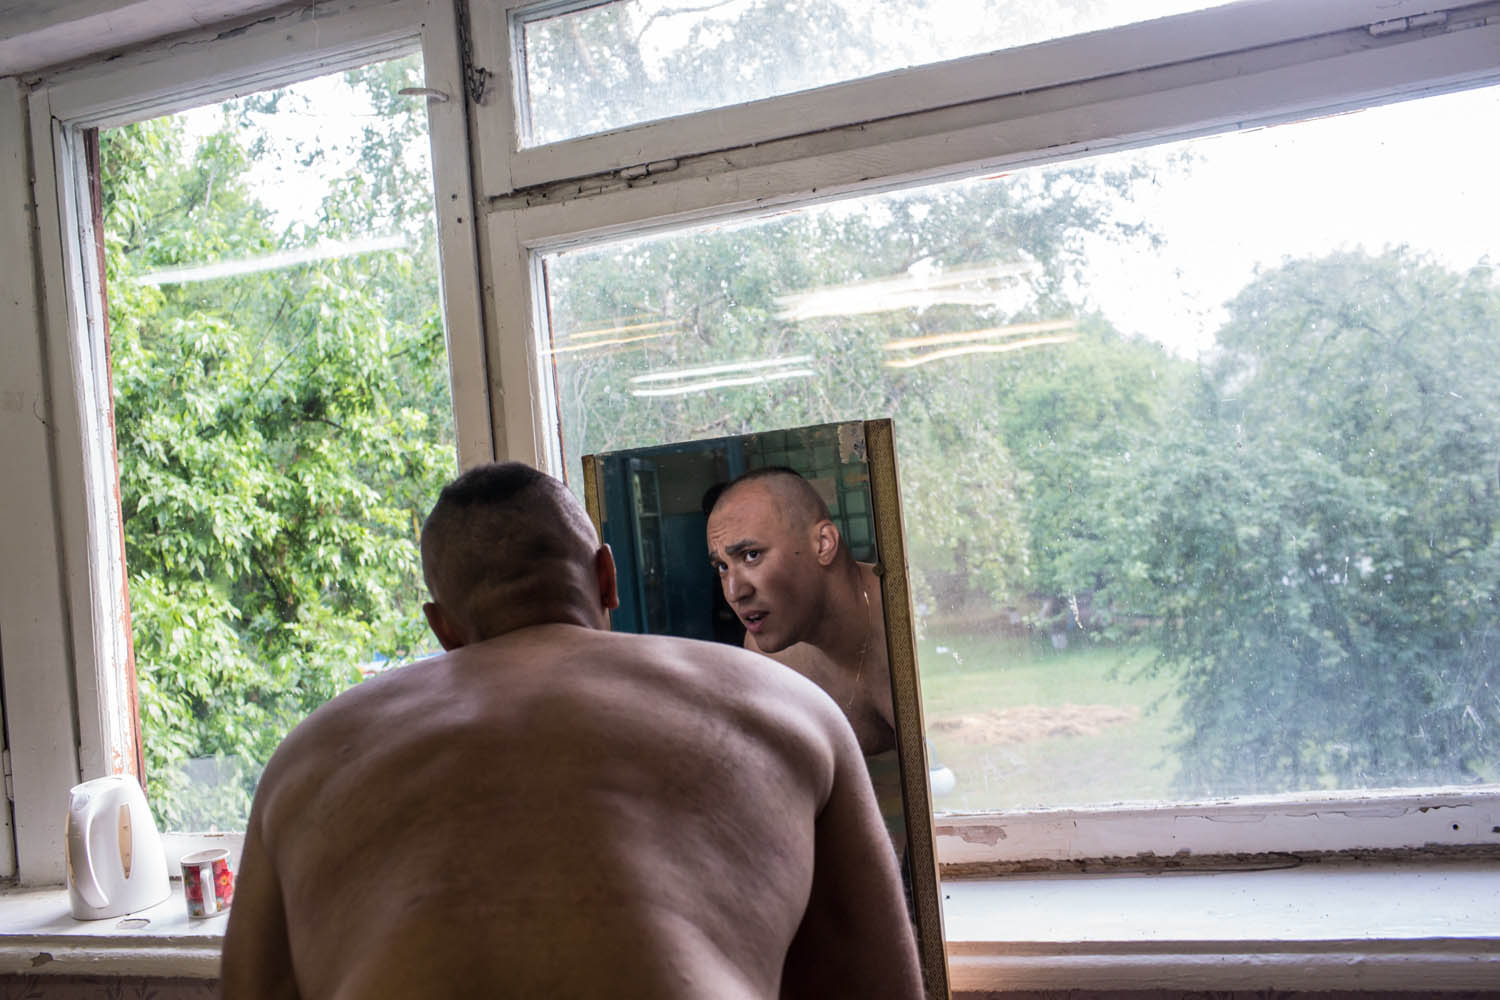 May 19, 2014. A new recruit checks his haircut at a training camp for the Donbass Battalion, a pro-Ukrainian militia in Dnipropetrovsk Region, Ukraine.